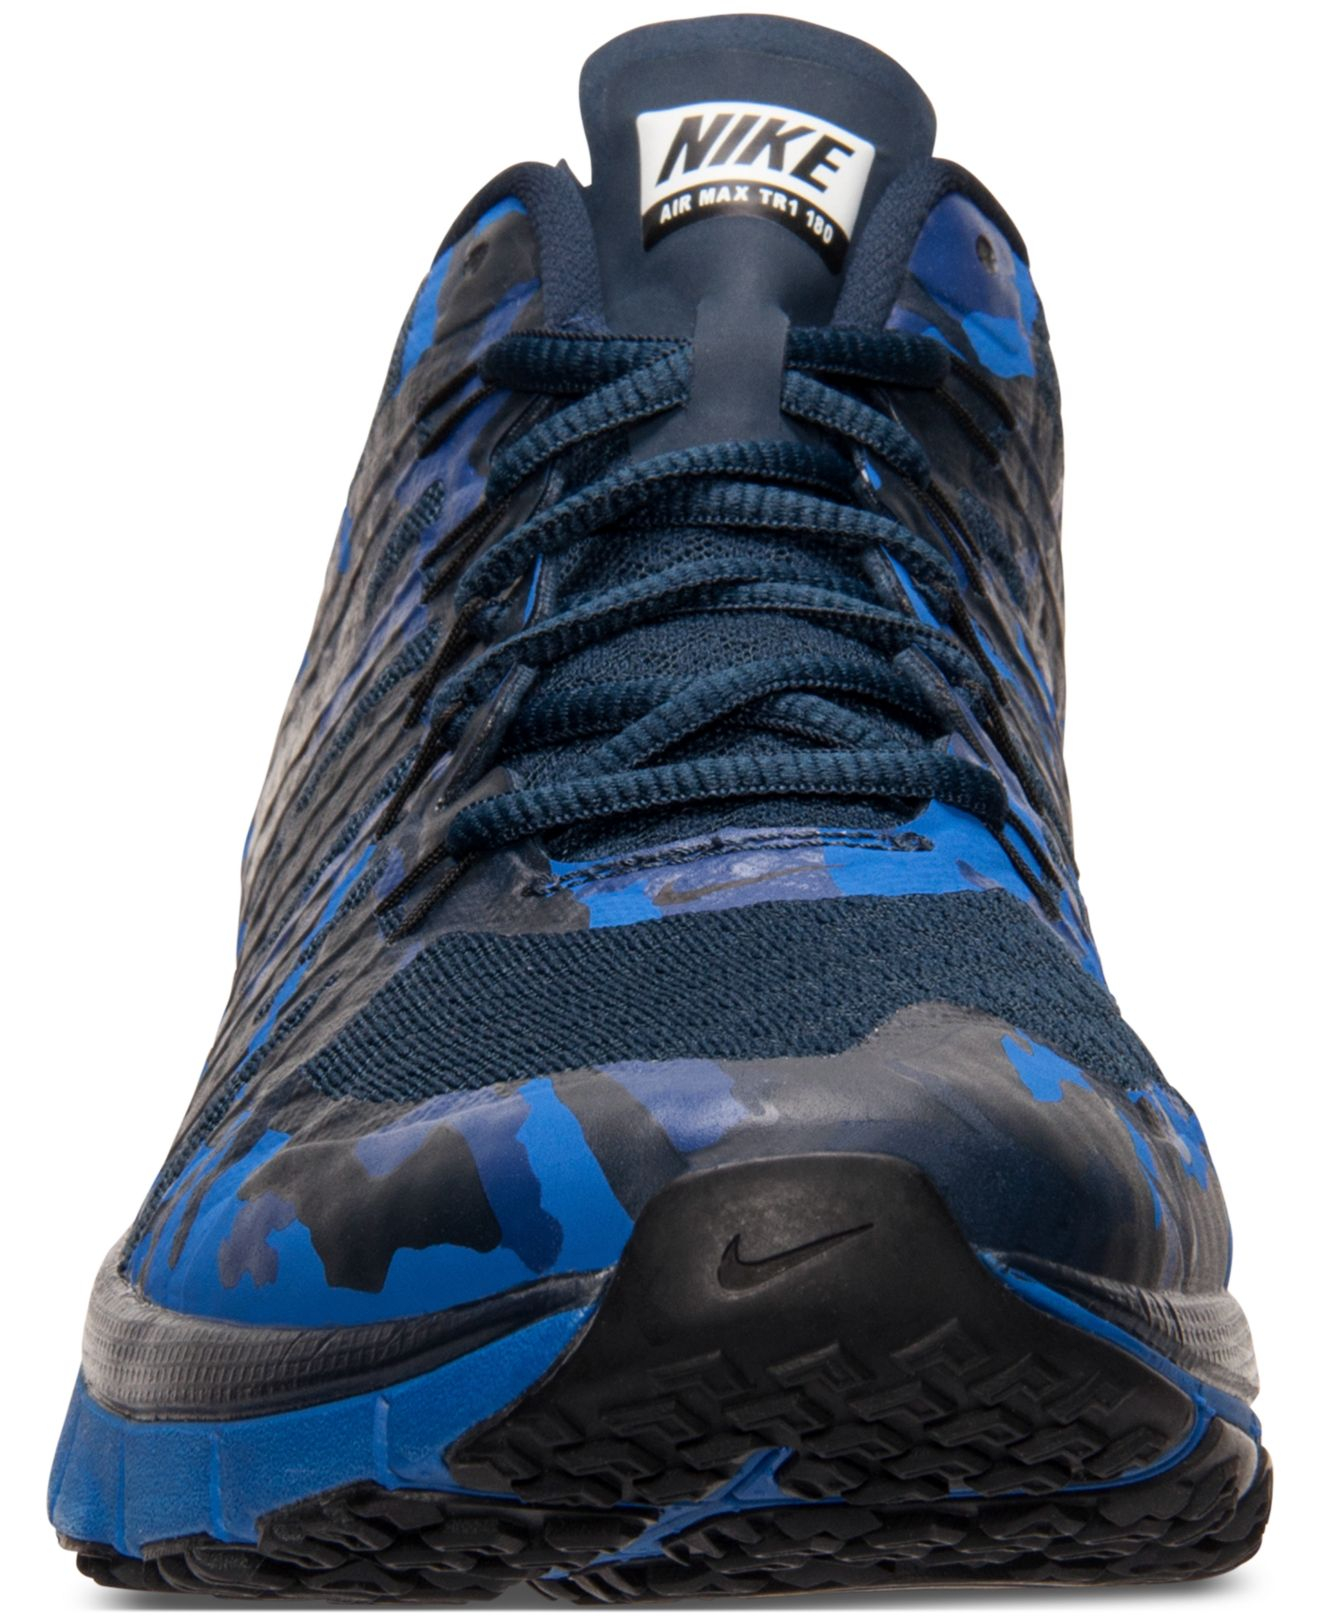 Lyst - Nike Men s Air Max Tr180 Amp Training Sneakers From Finish Line in  Blue for Men 4a2a92a1d